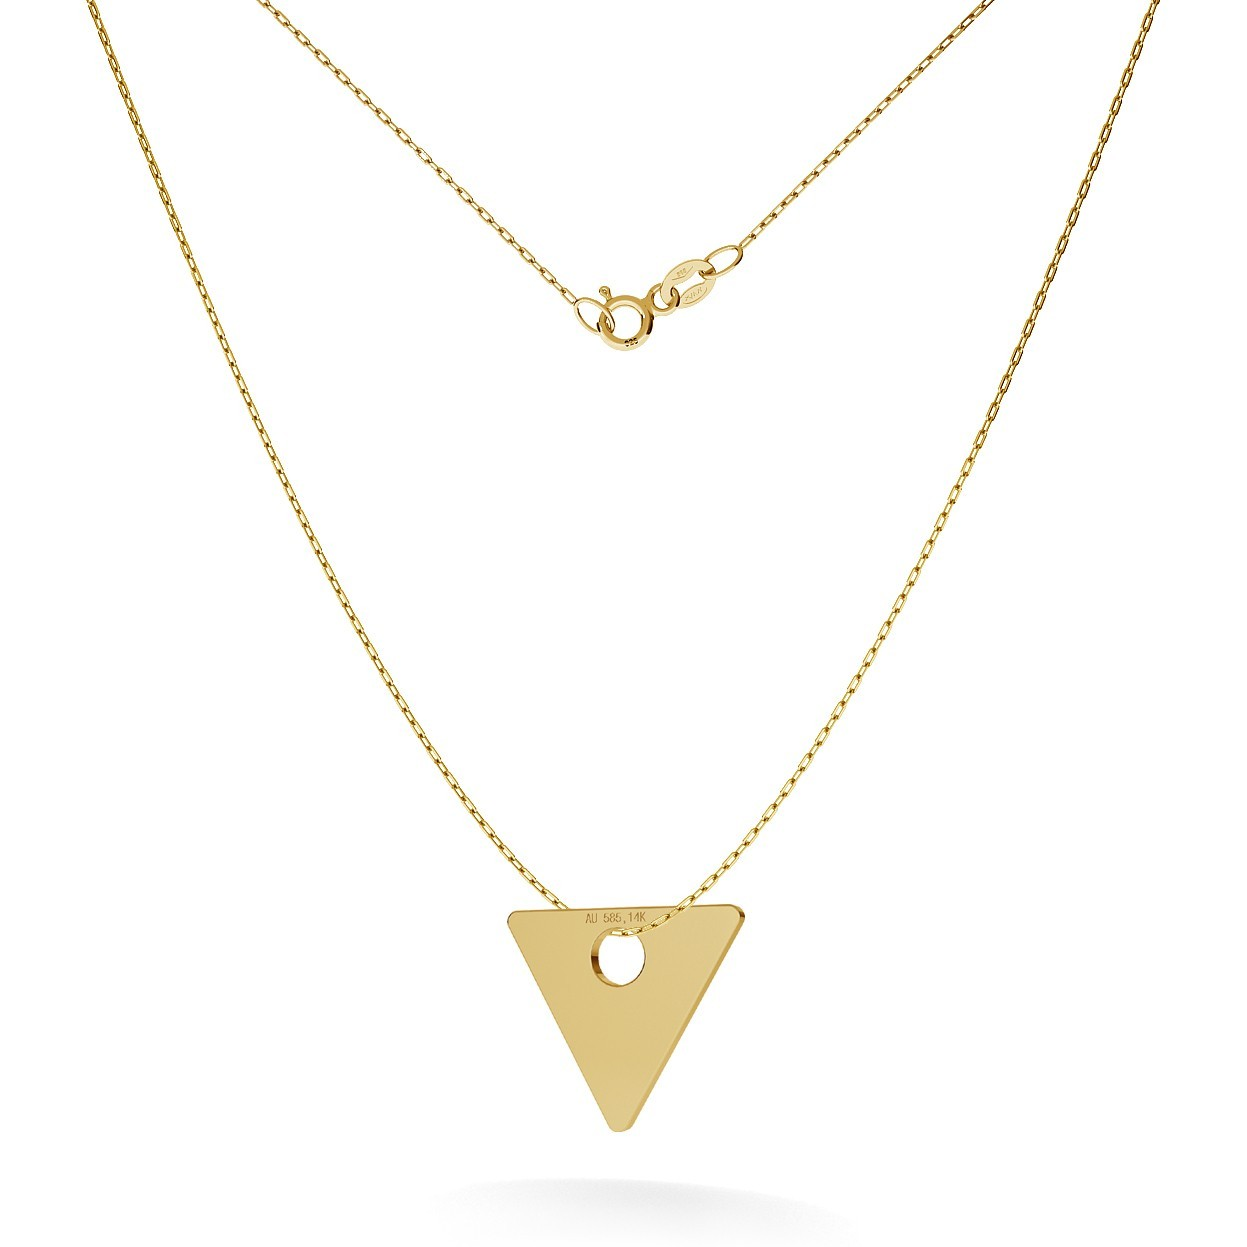 GOLD TRIANGLE NECKLACE 14K, MODEL 16